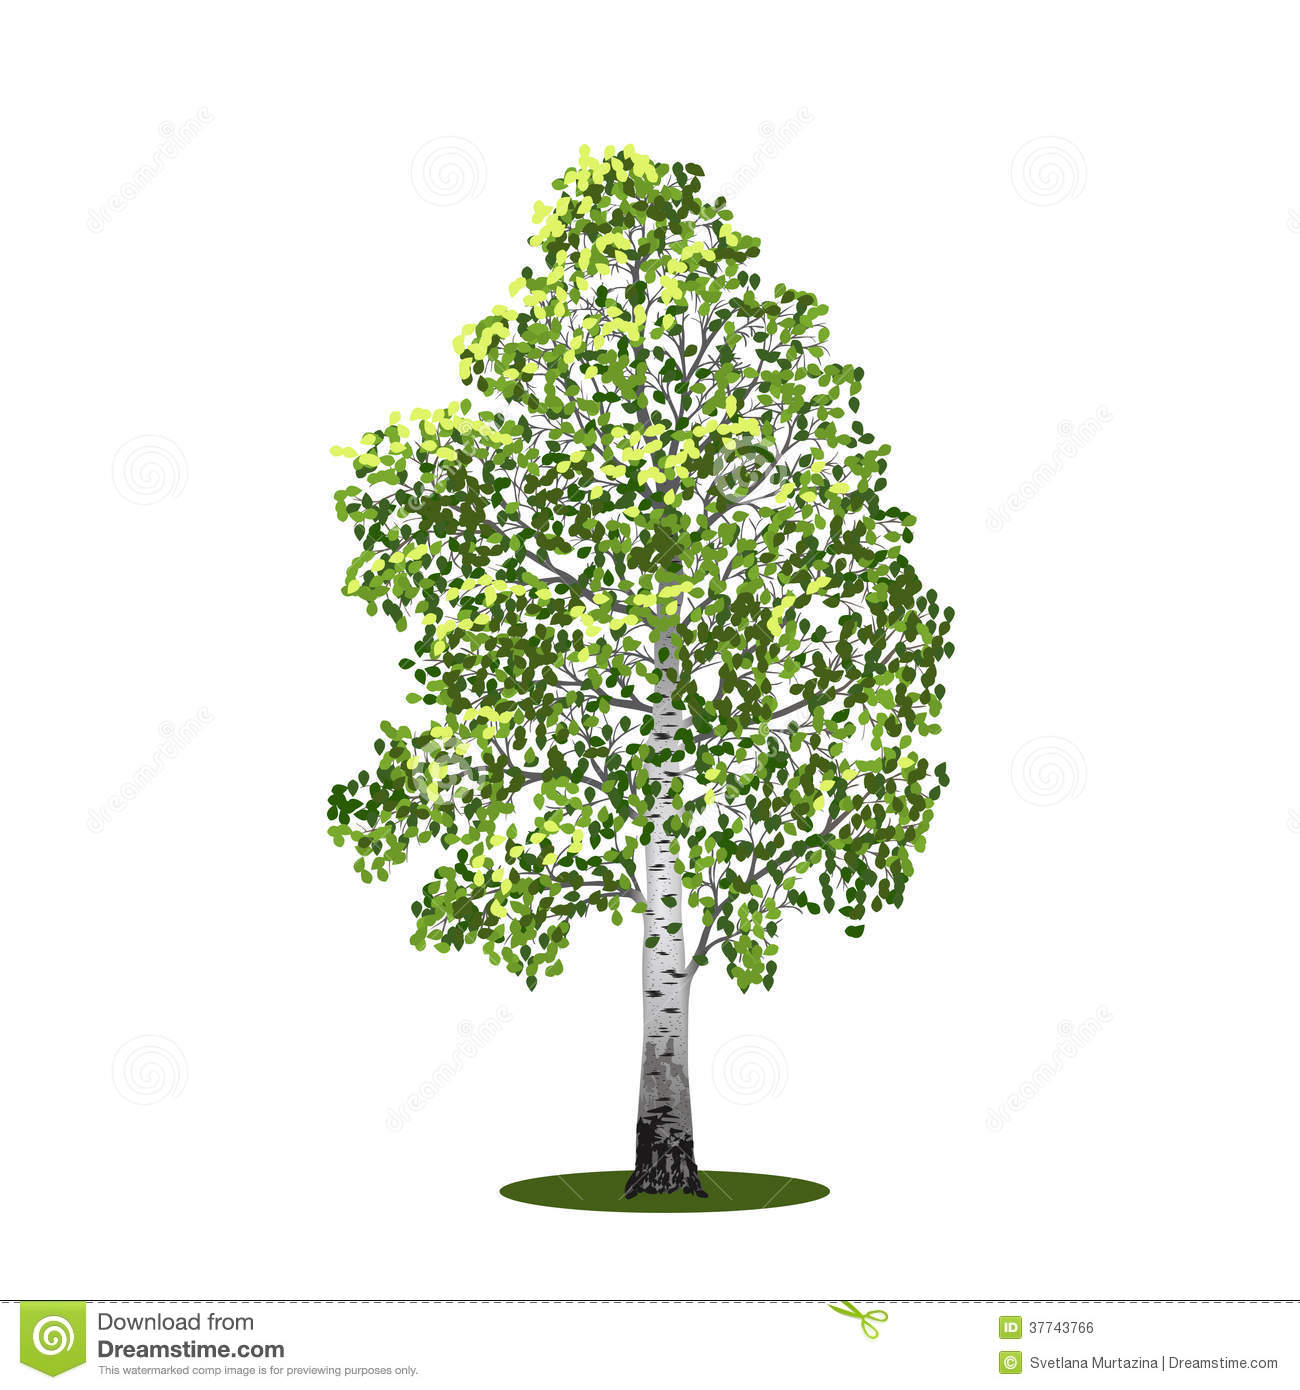 Detached Tree Birch With Leaves Vector Illustrati Royalty Free Stock